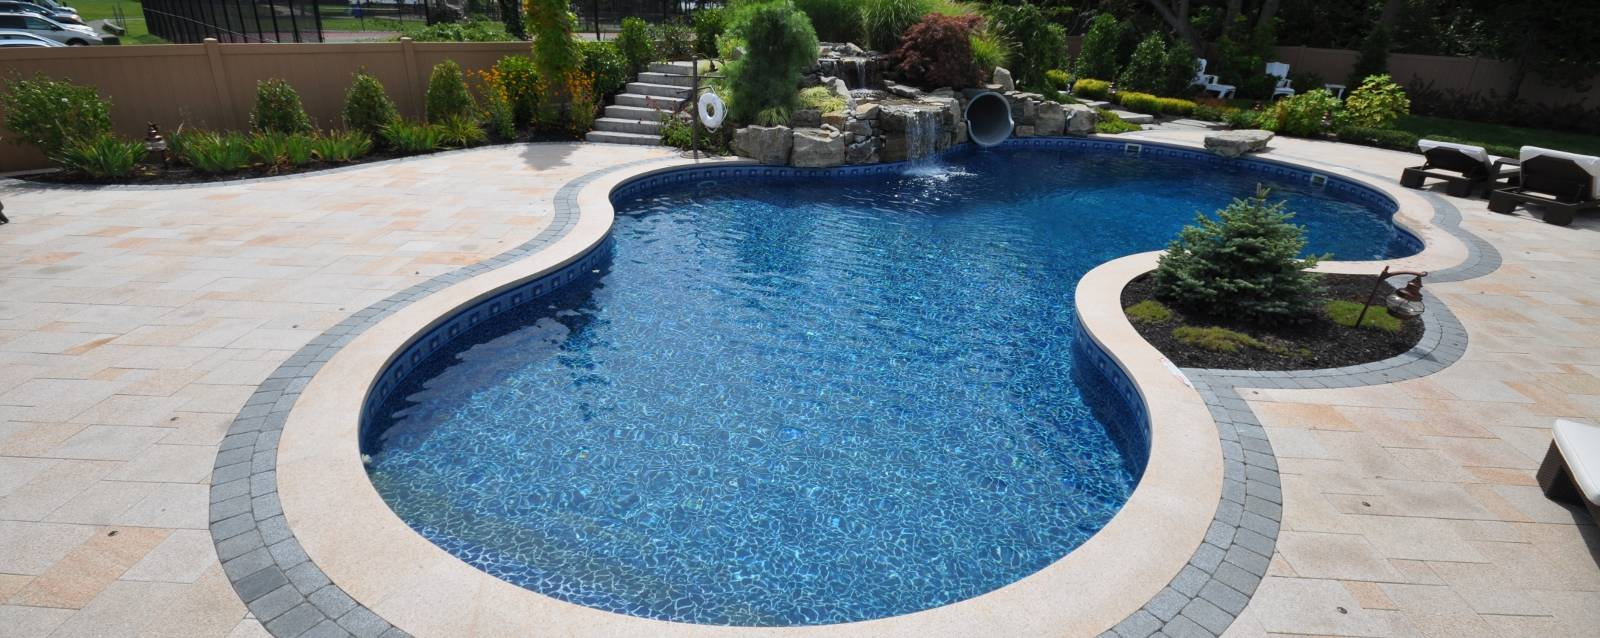 Long Island Inground Pools   Design And Swimming Pool Installation  Contractors